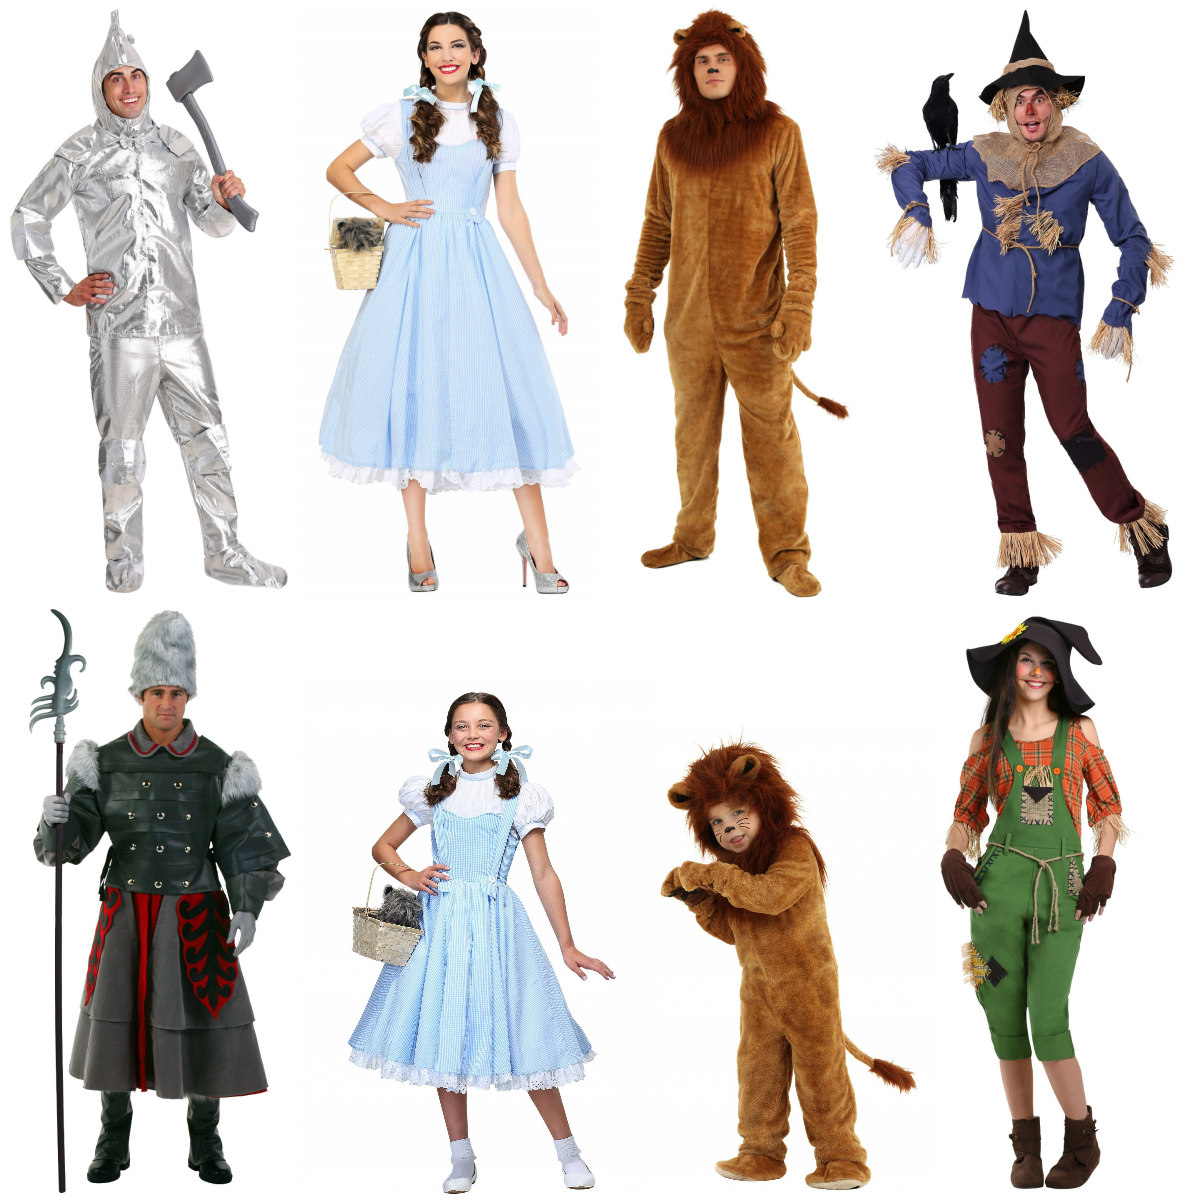 The Wizard of Oz Costumes